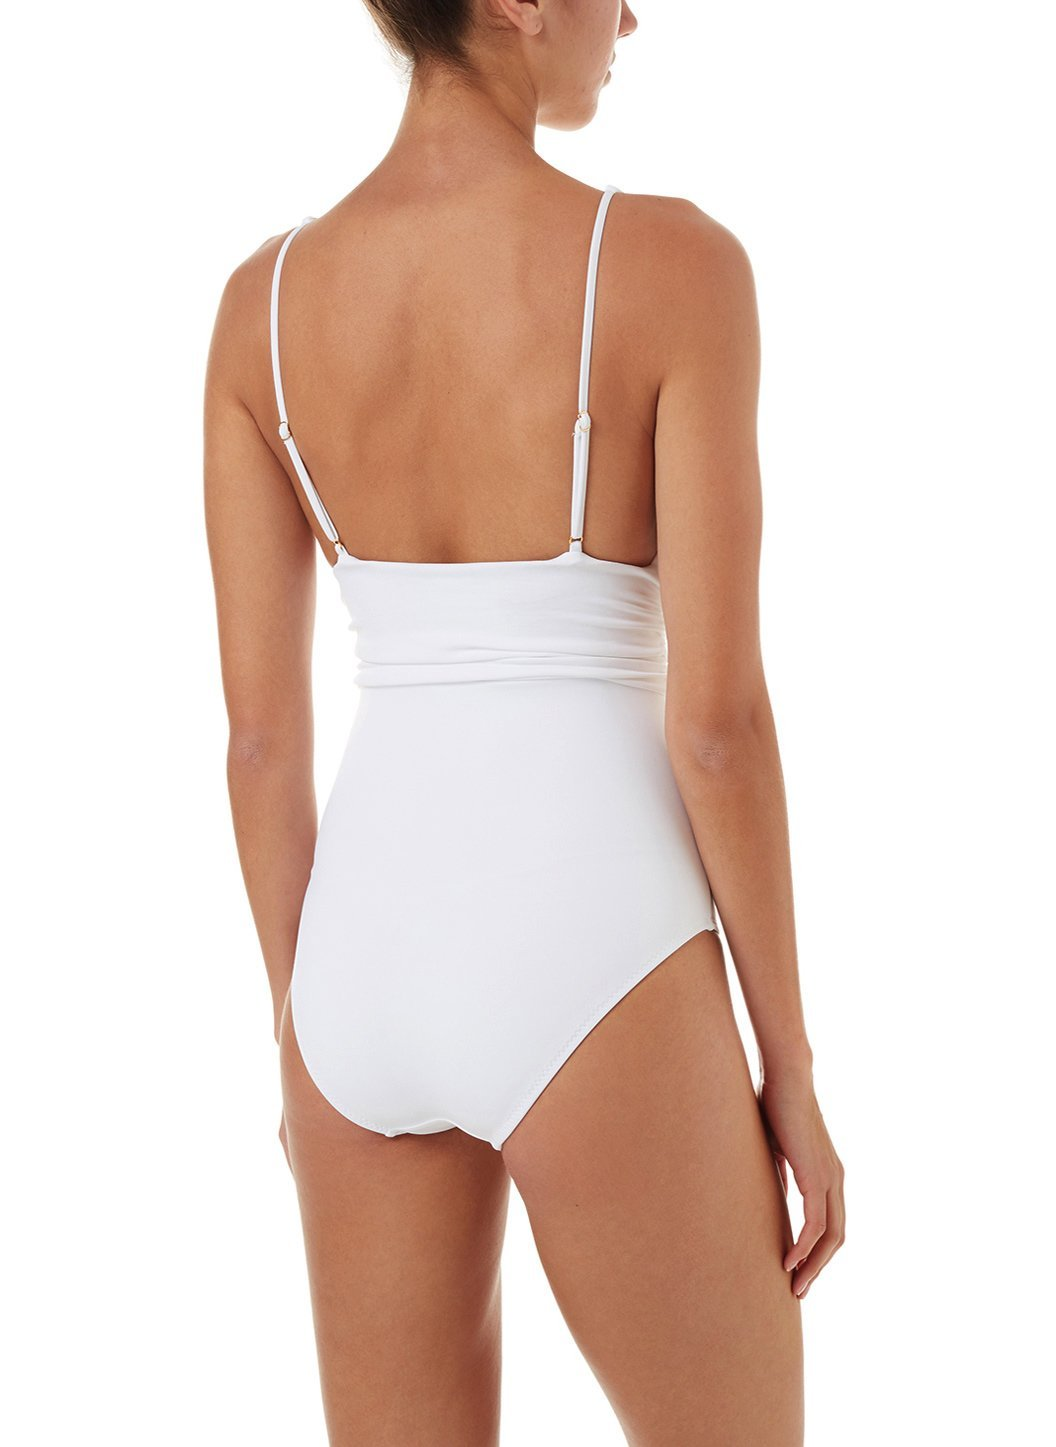 panarea white classic overtheshoulder ruched onepiece swimsuit 2019 B